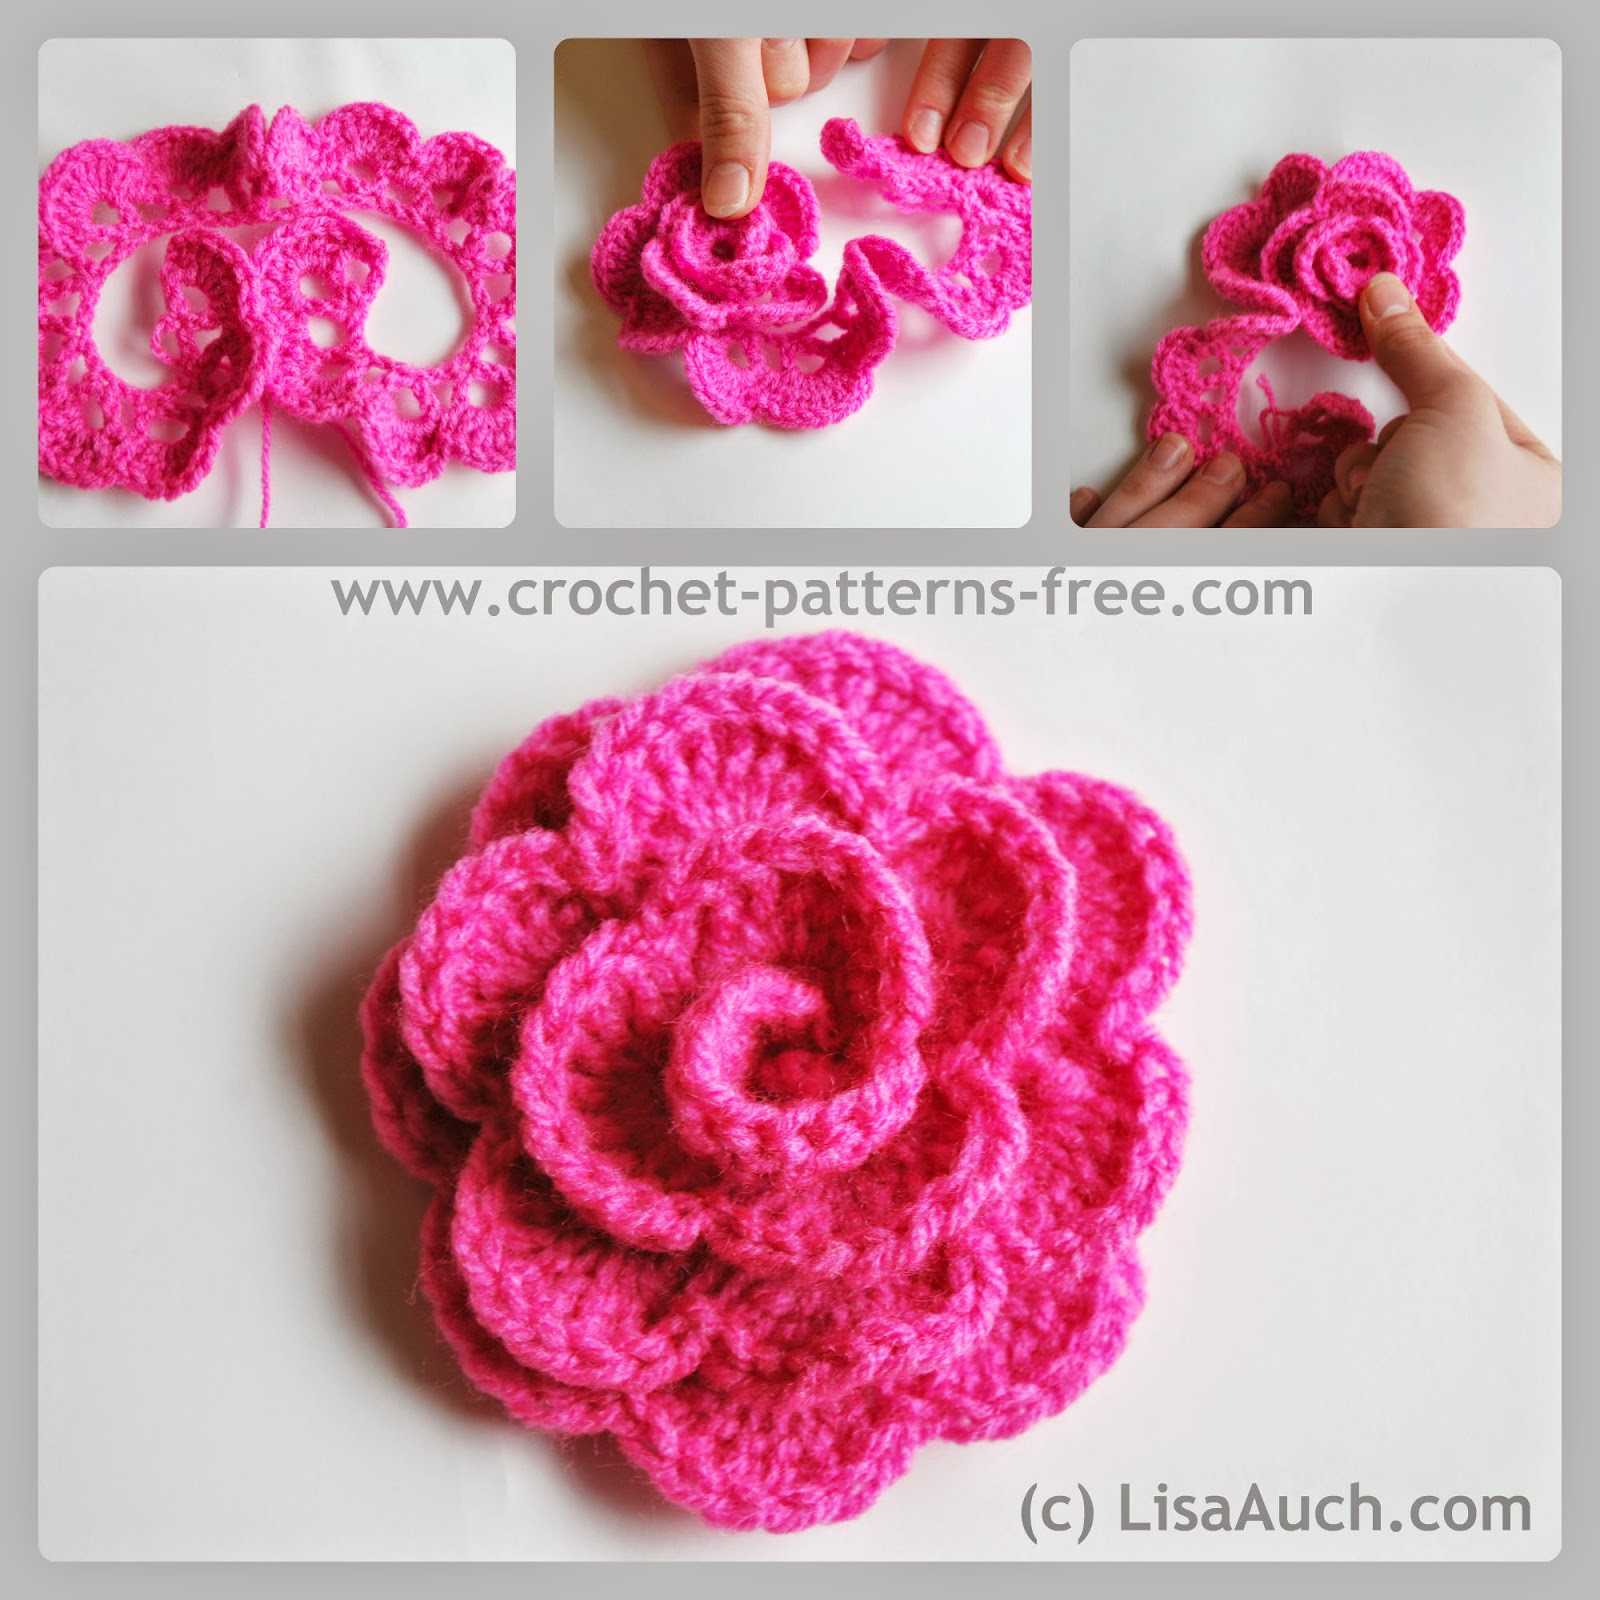 Lovely How to Crochet Little Flowers Crochet and Knit Cool Crochet Patterns Of Awesome 45 Ideas Cool Crochet Patterns